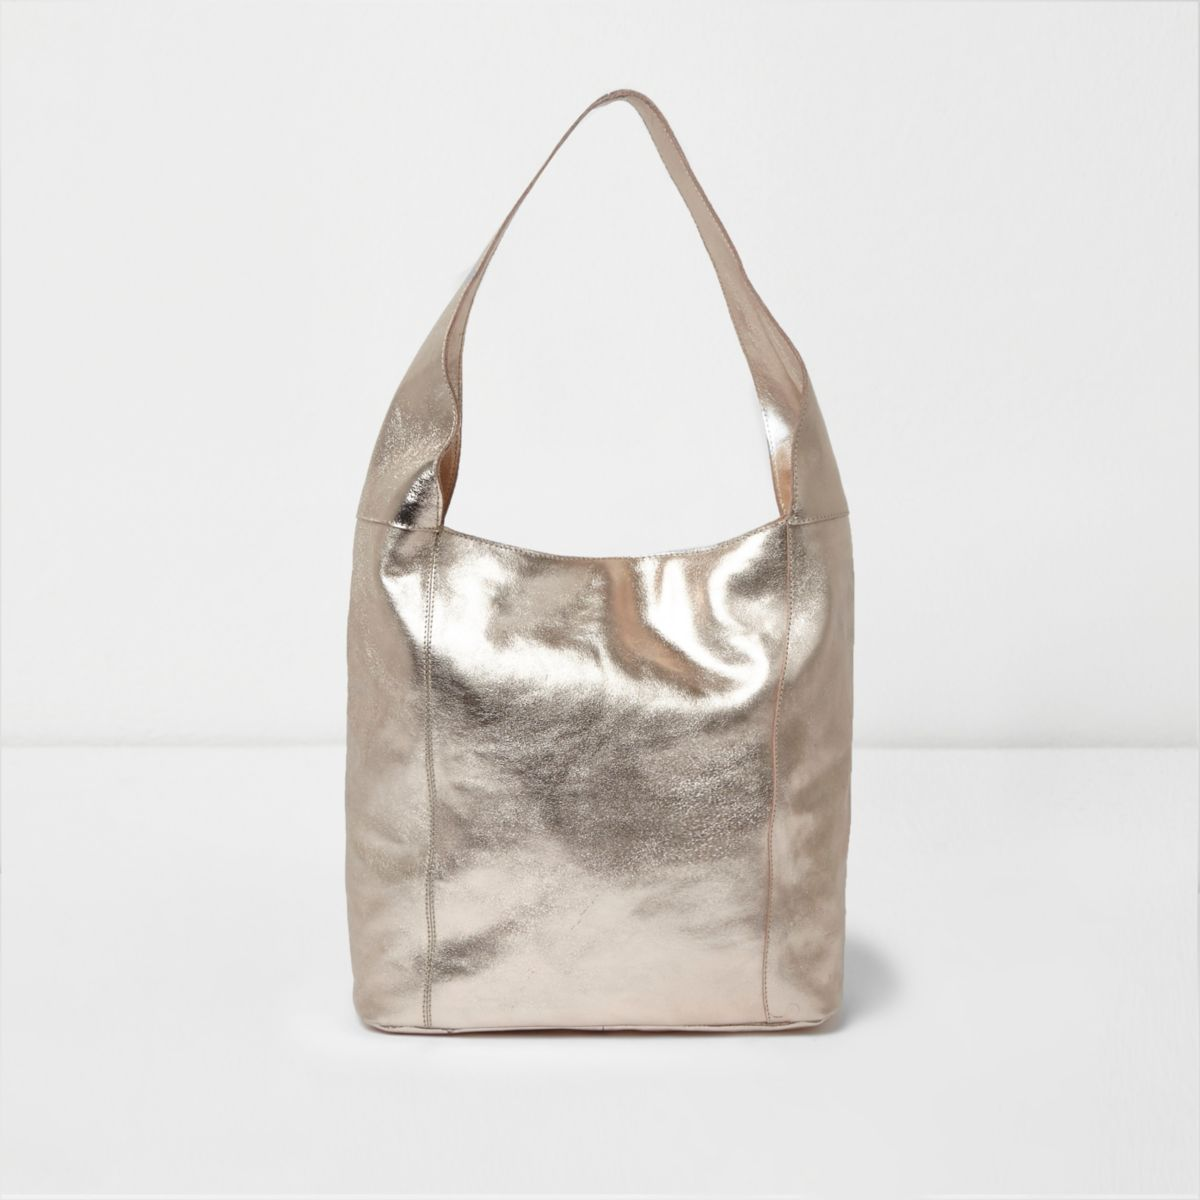 Gold metallic leather underarm slouch bag